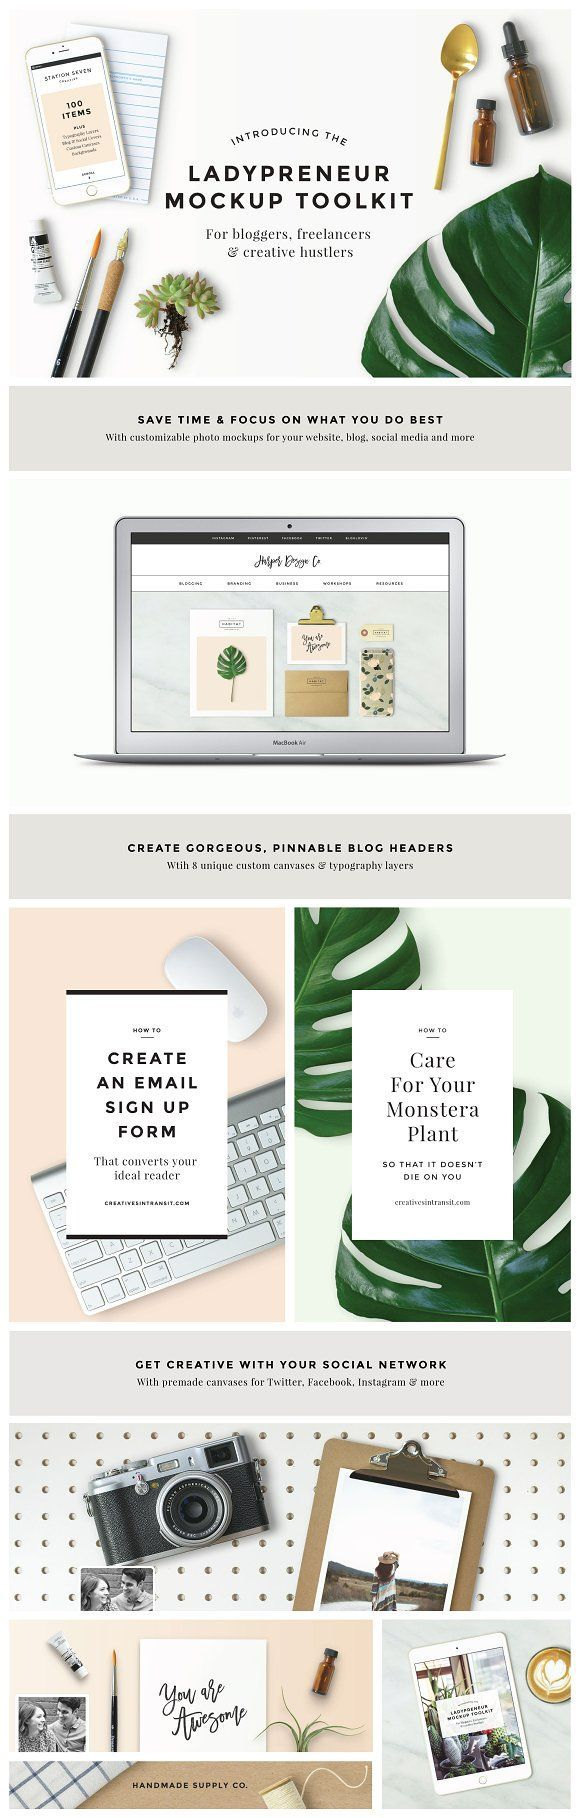 Ladypreneur Mockup Creator Toolkit by Station Seven on @creativemarket